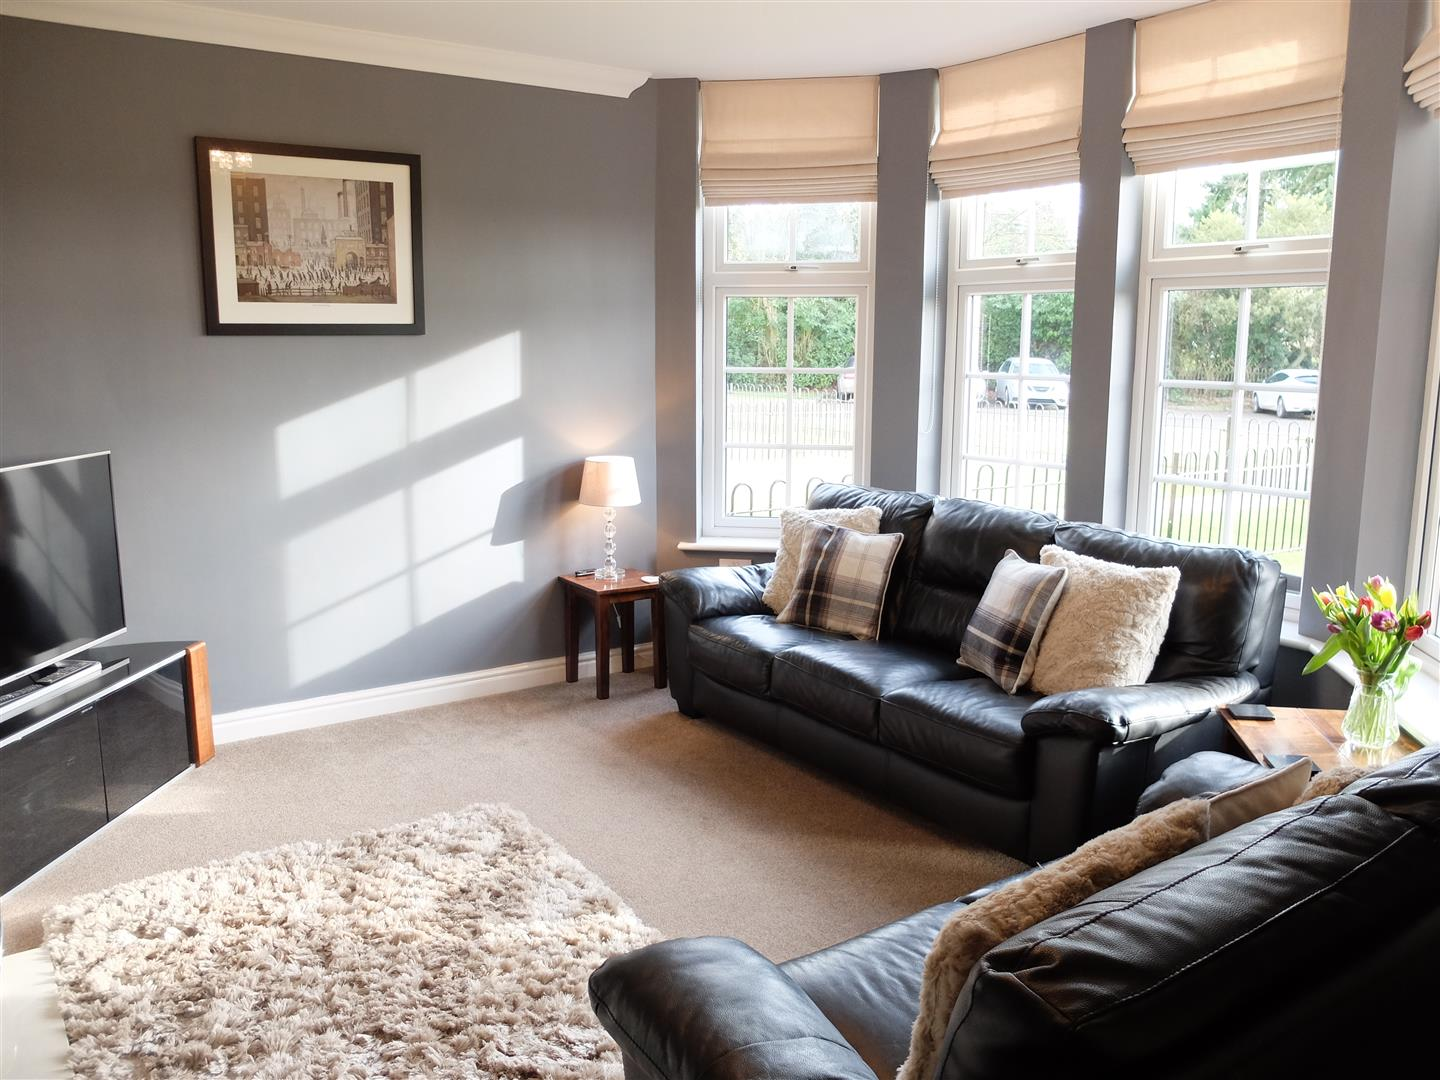 4 Bedrooms House For Sale 5 Oval Court Carlisle